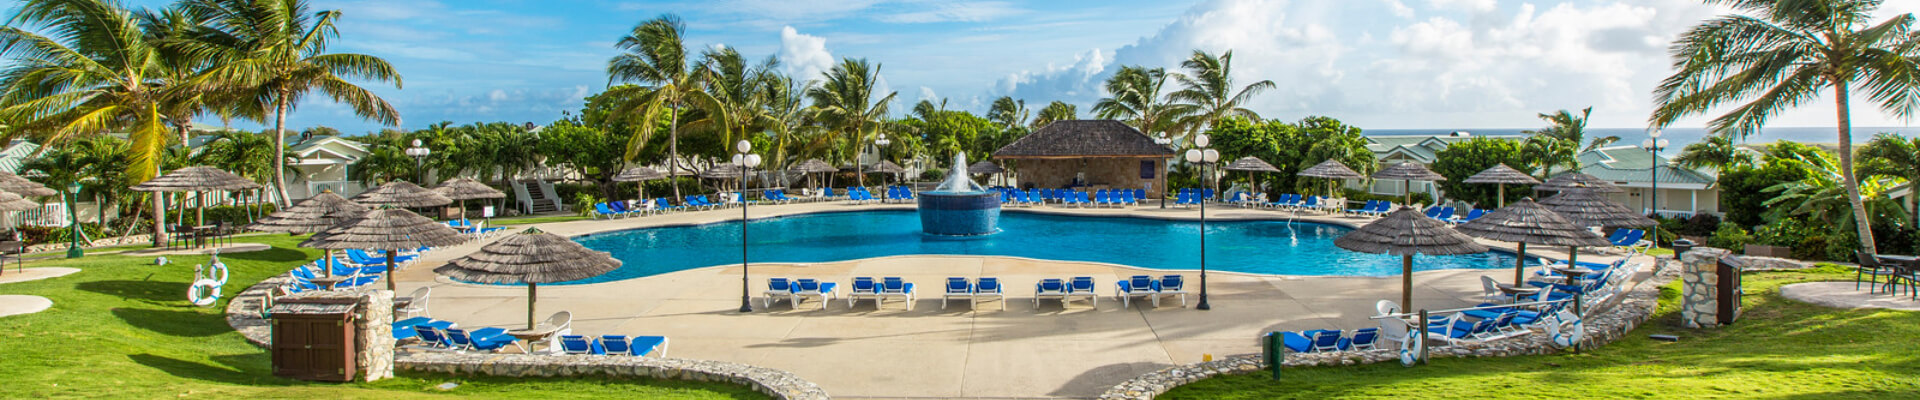 THE VERANDAH BEACH RESORT & SPA – ALL-INCLUSIVE ANTIGUA